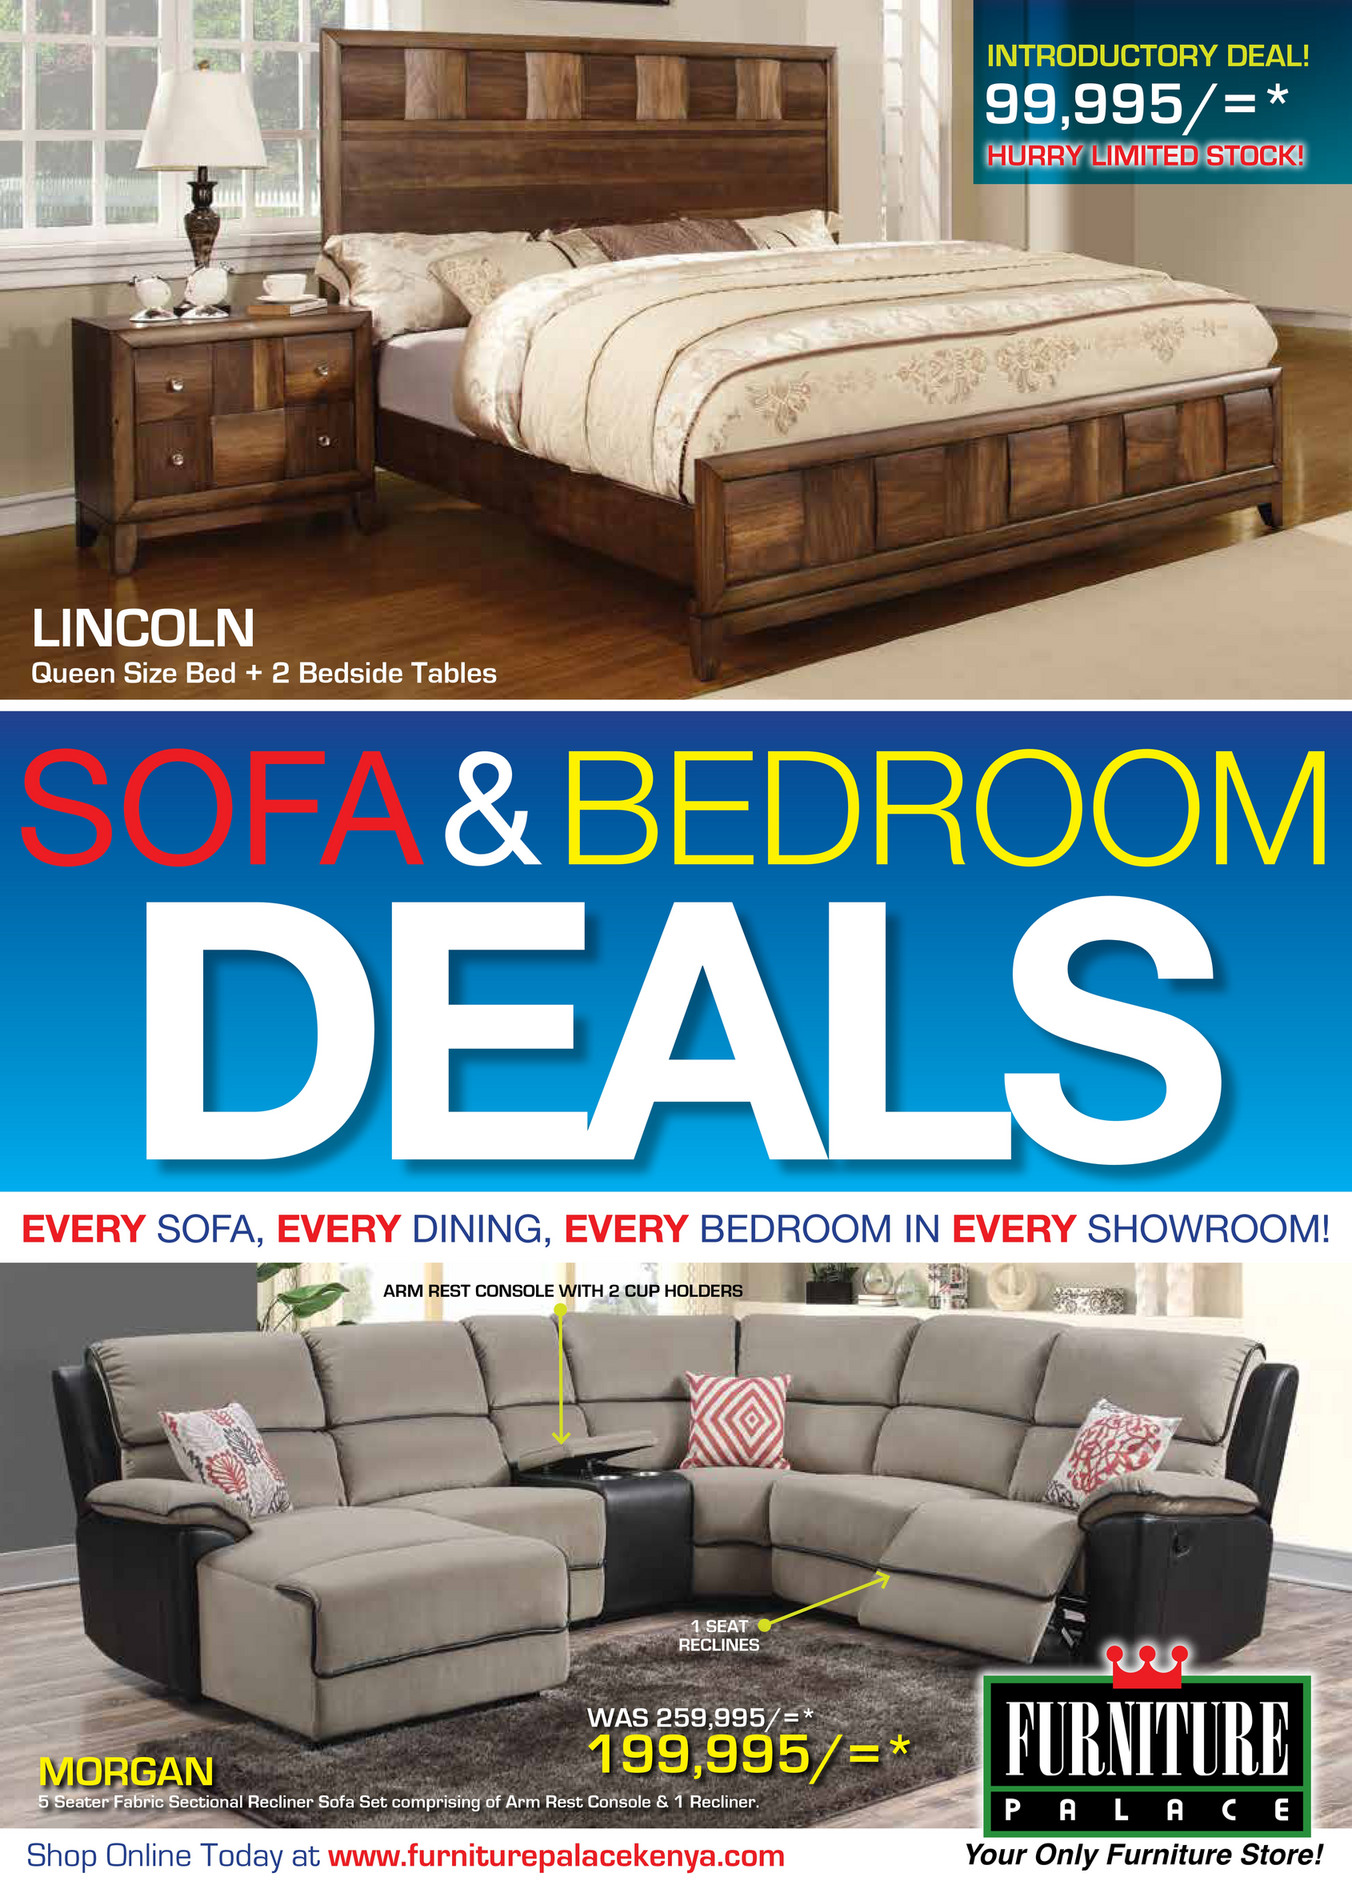 Picture of: Promopoa Com Furniture Palace Sofa Bedroom Deals Page 1 Created With Publitas Com